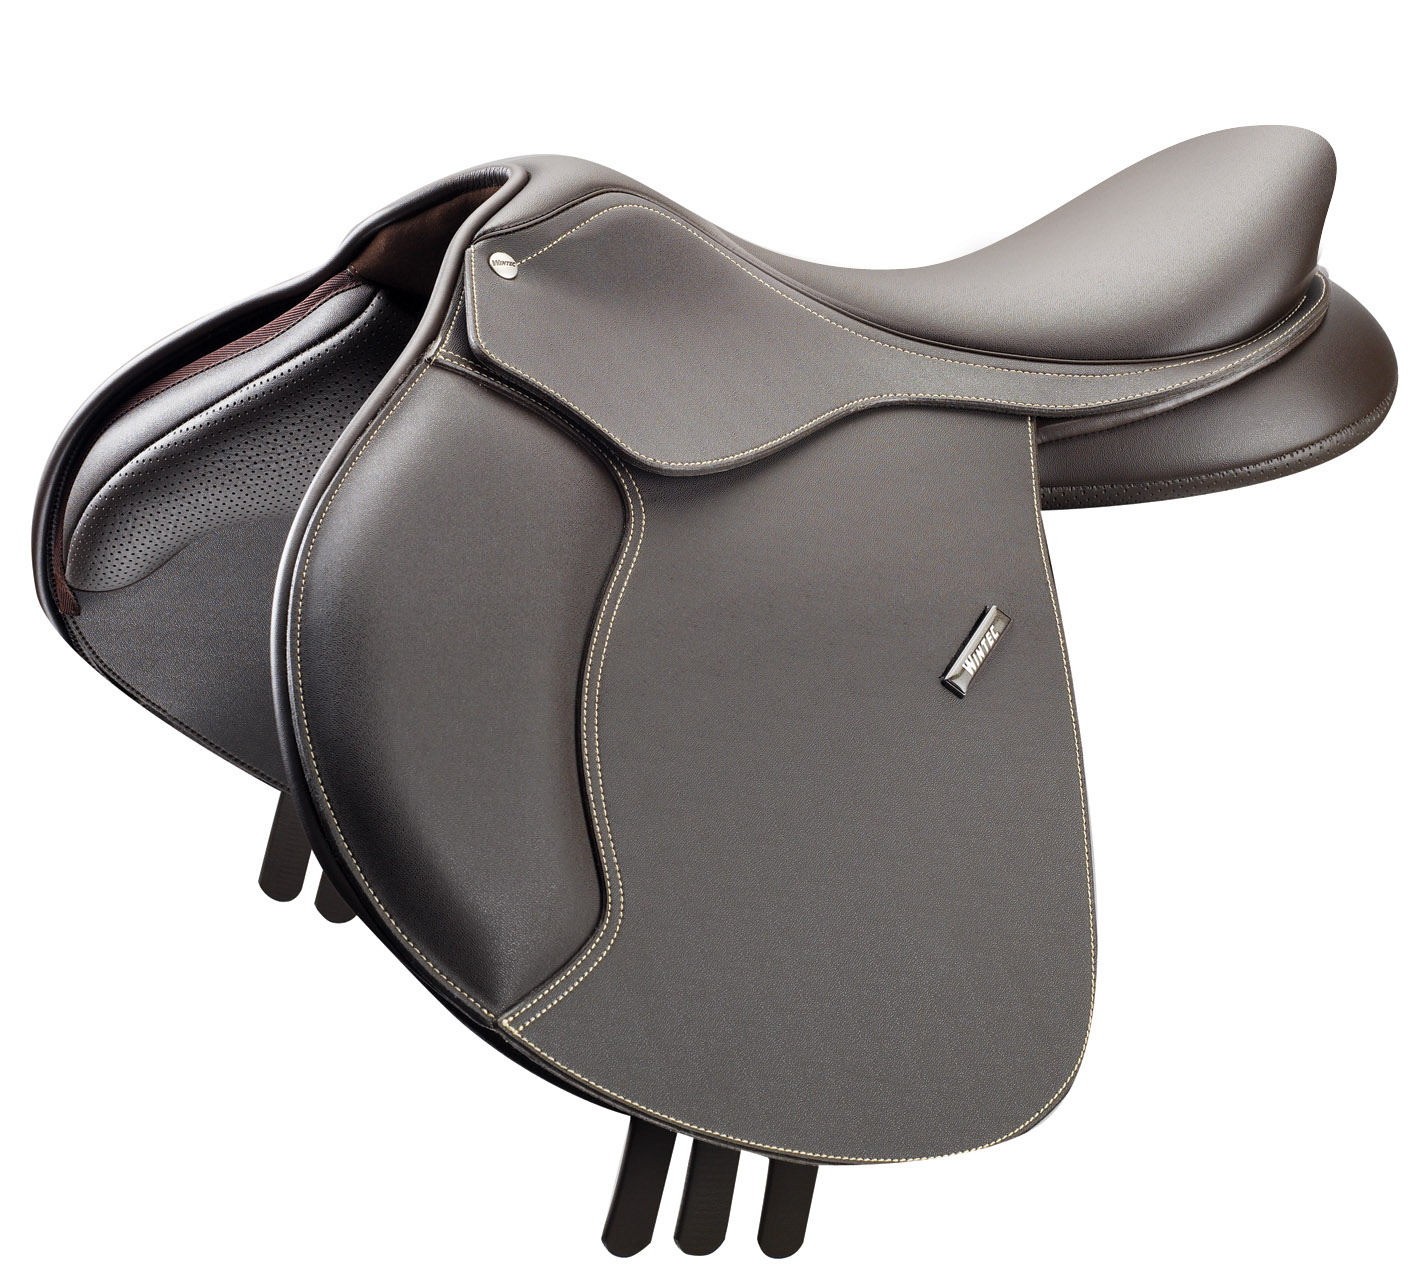 NEW 2012 Wintec 500 CAIR Close Contact Saddle